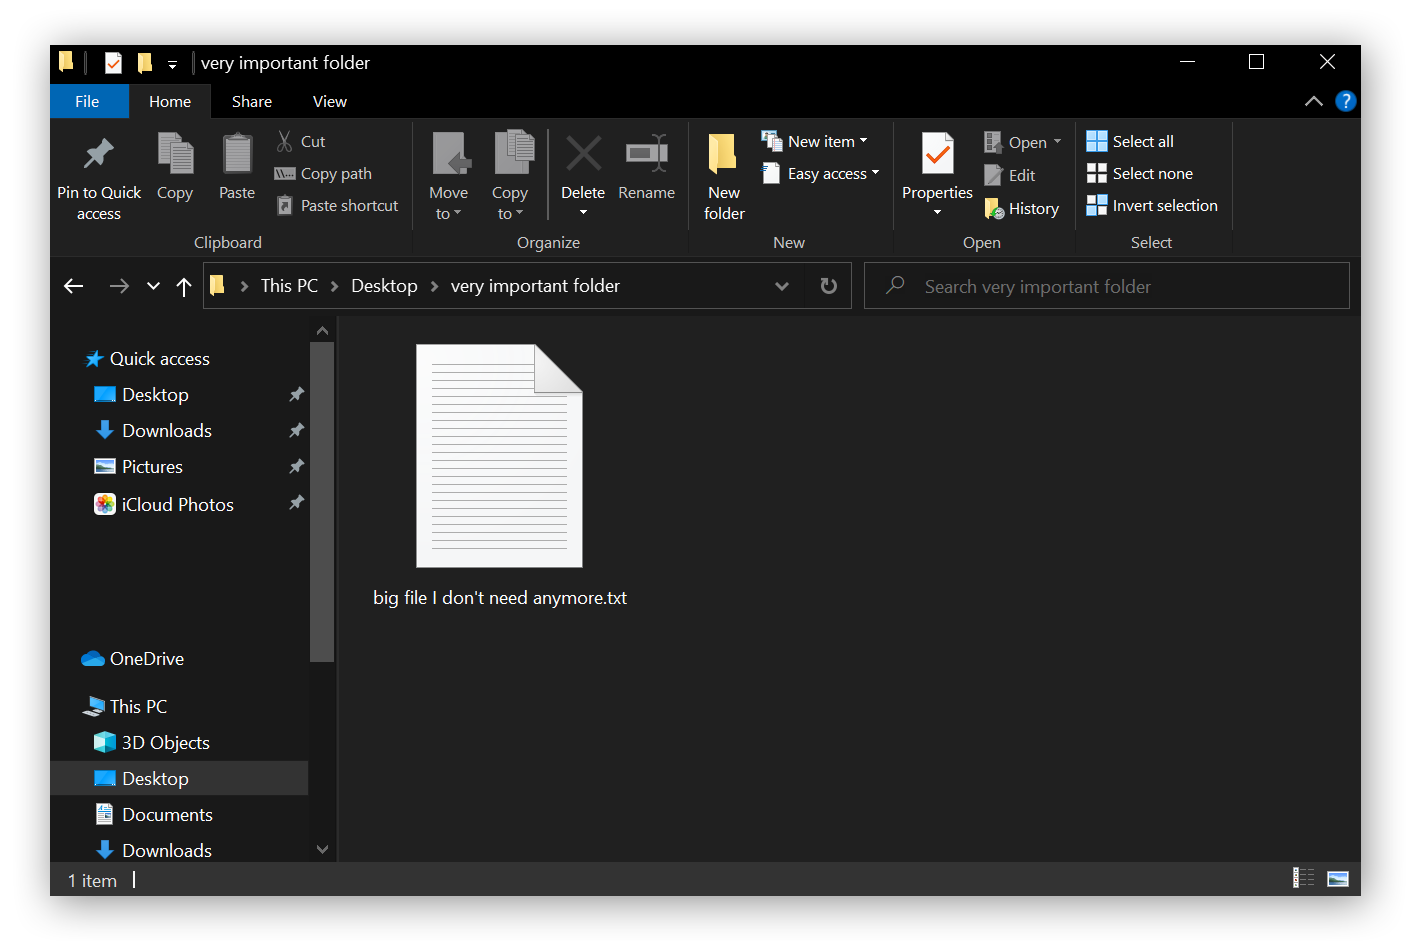 An image of a file seen in File Explorer.